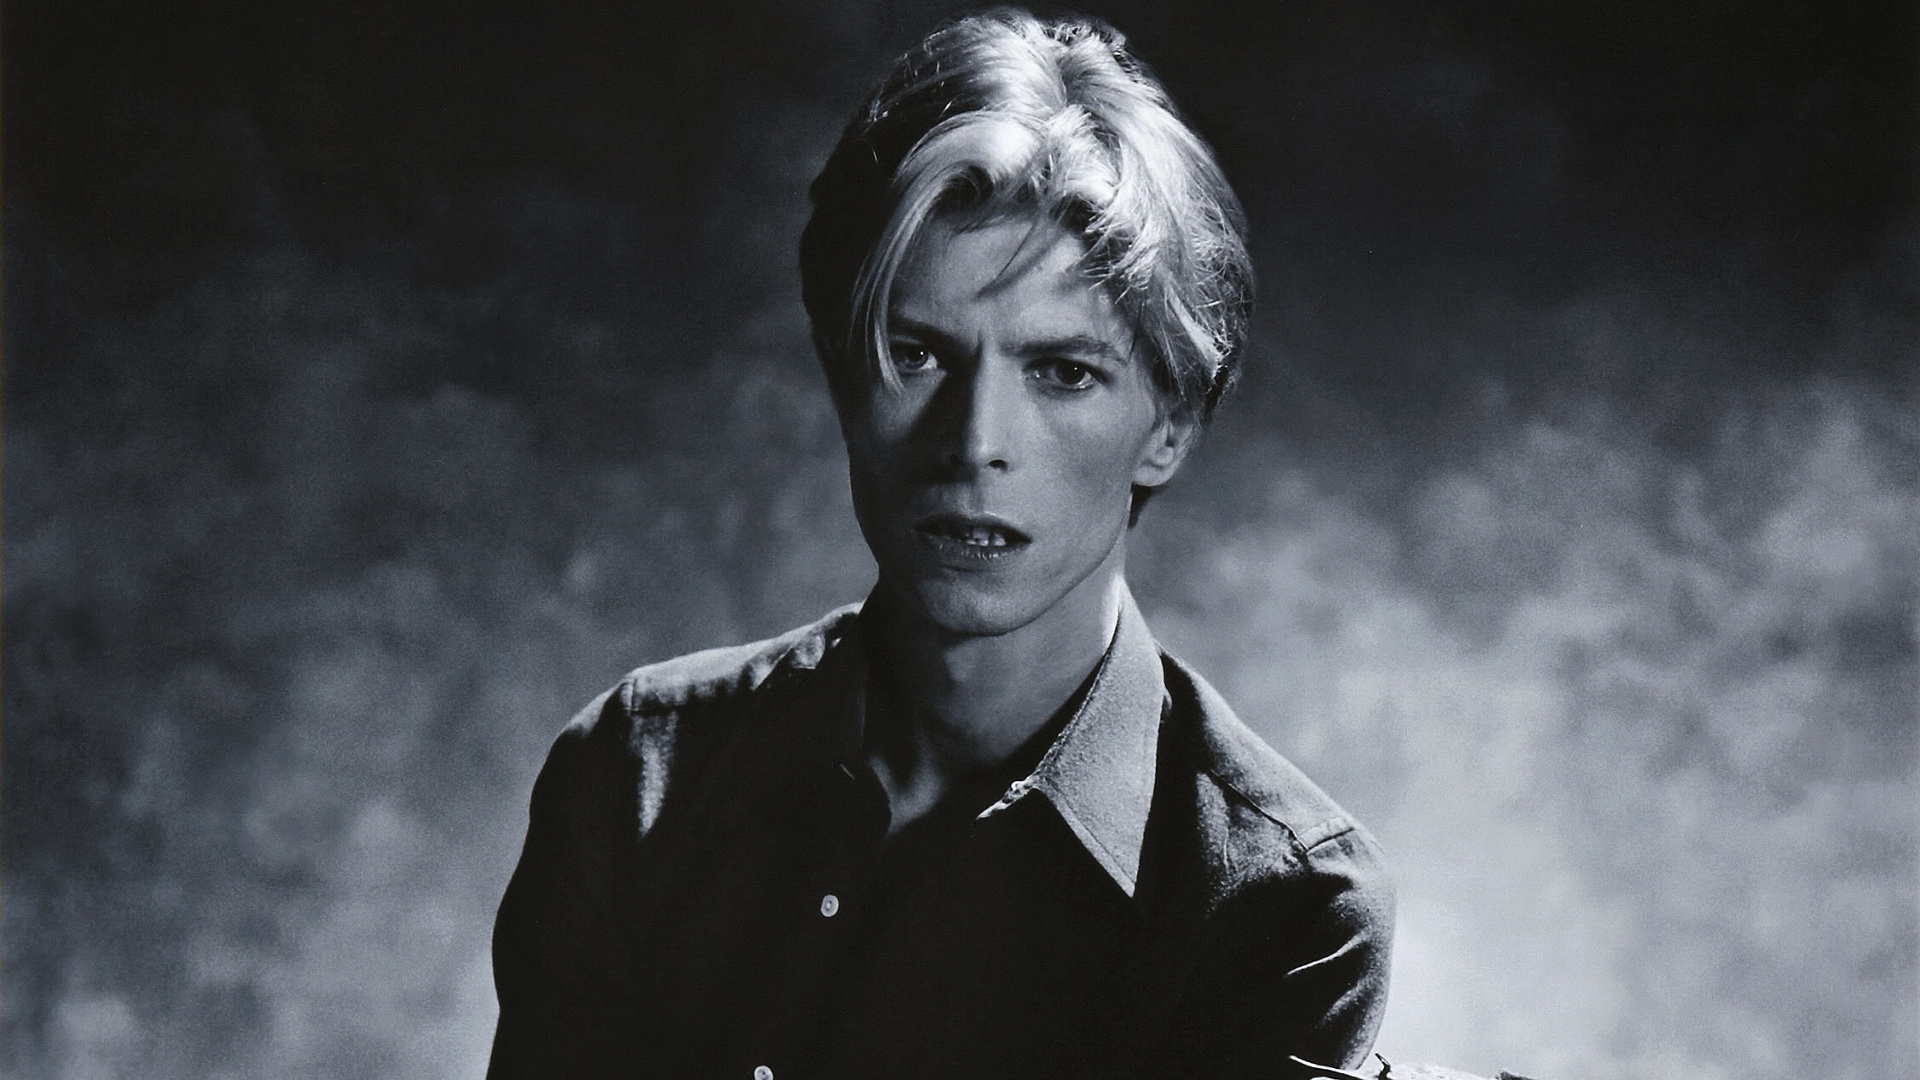 david bowie wallpapers pictures images